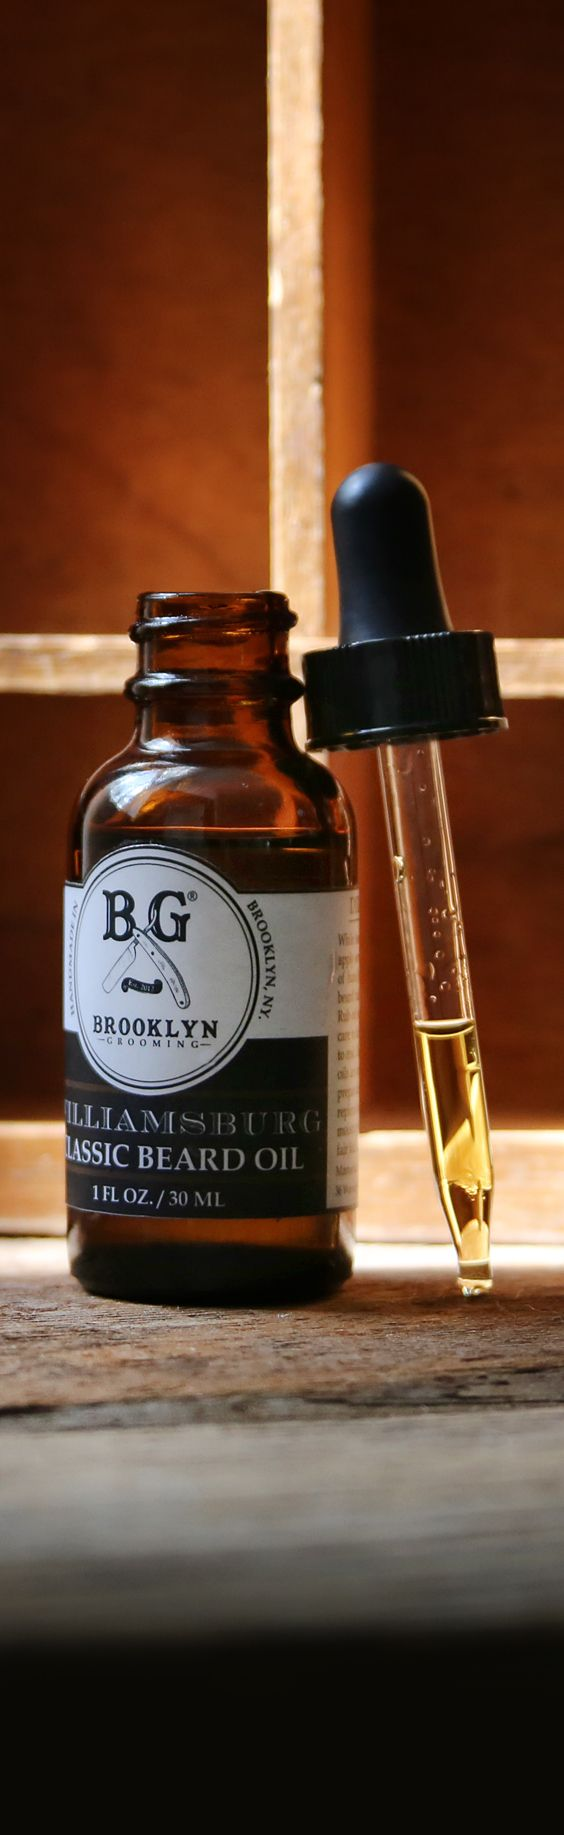 Our classic beard oils are naturally formulated to prevent beardruff by re-introducing moisture to the hidden skin underneath your facial hair. Made with nutritive ingredients including organic hempseed oil, sesame oil, jojoba oil, argan oil, rosemary ext